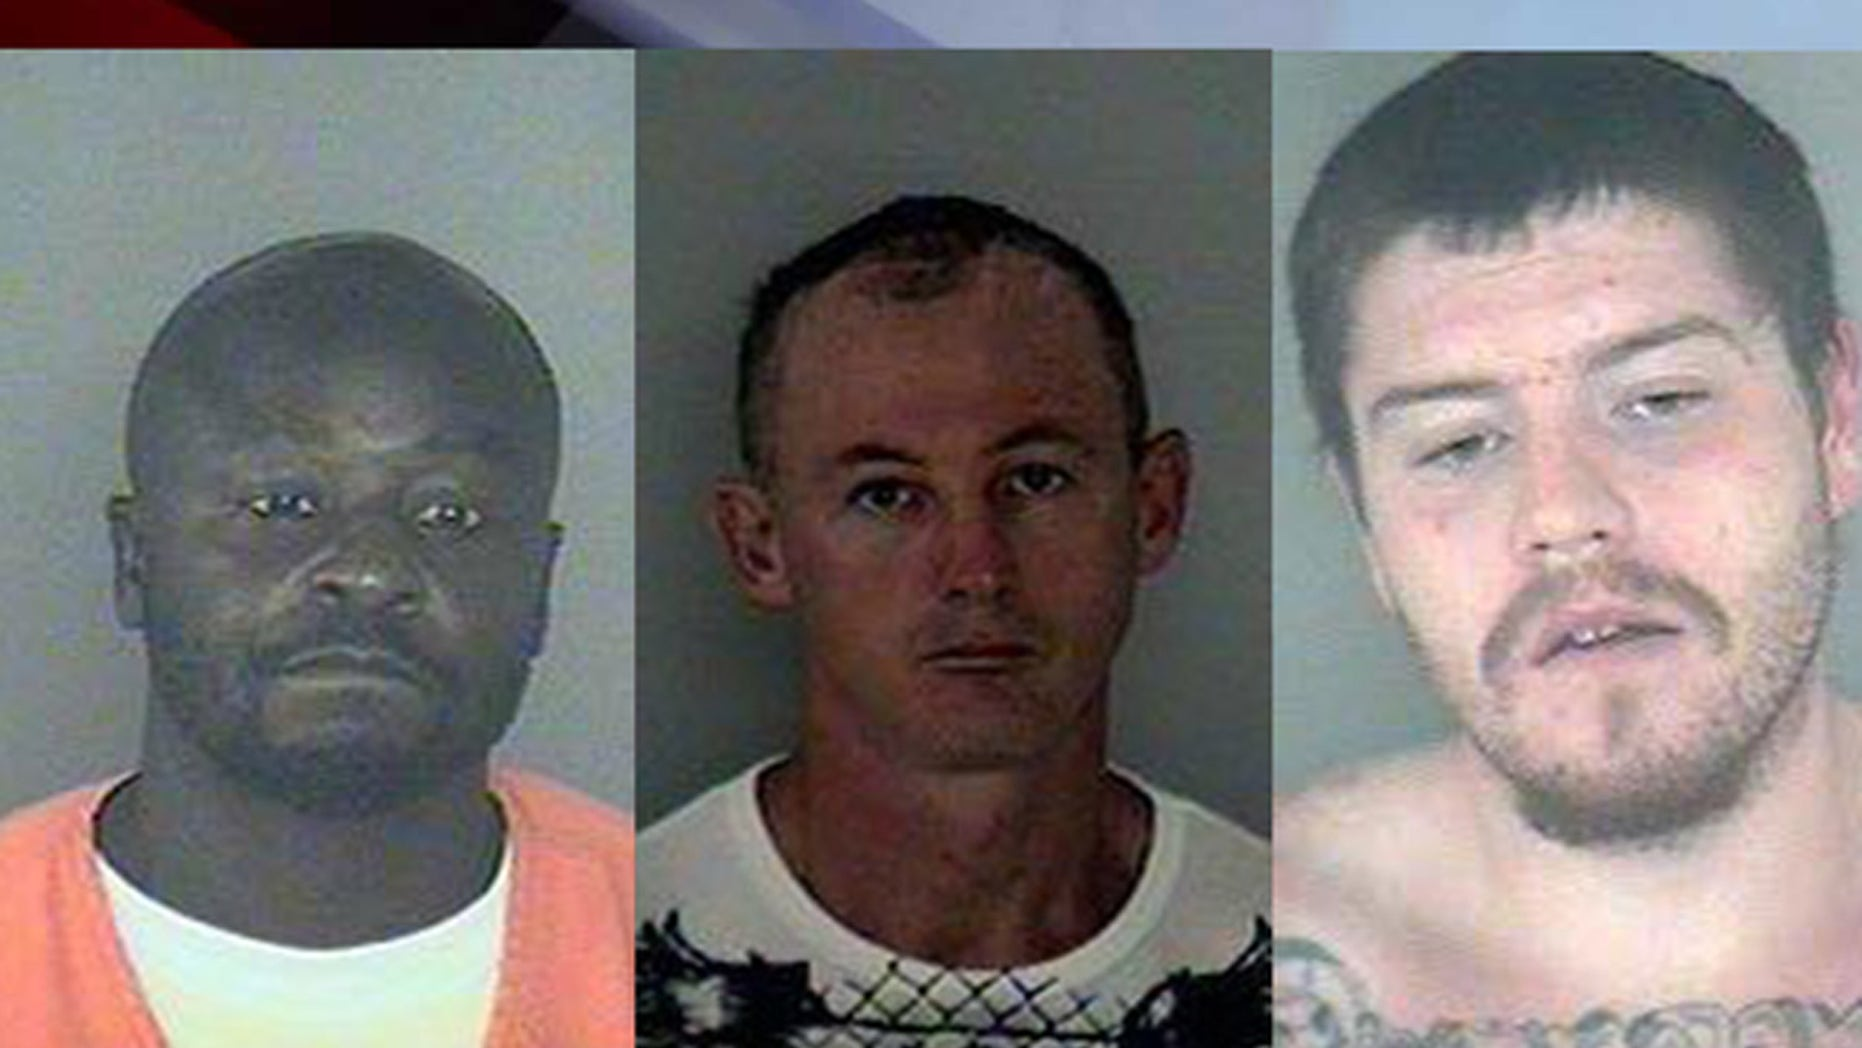 Florida deputies say Joel Cooper, 43, (l), Donald Cotter, 44, (c) and Casey Brandon, 25, escaped from jail Friday.